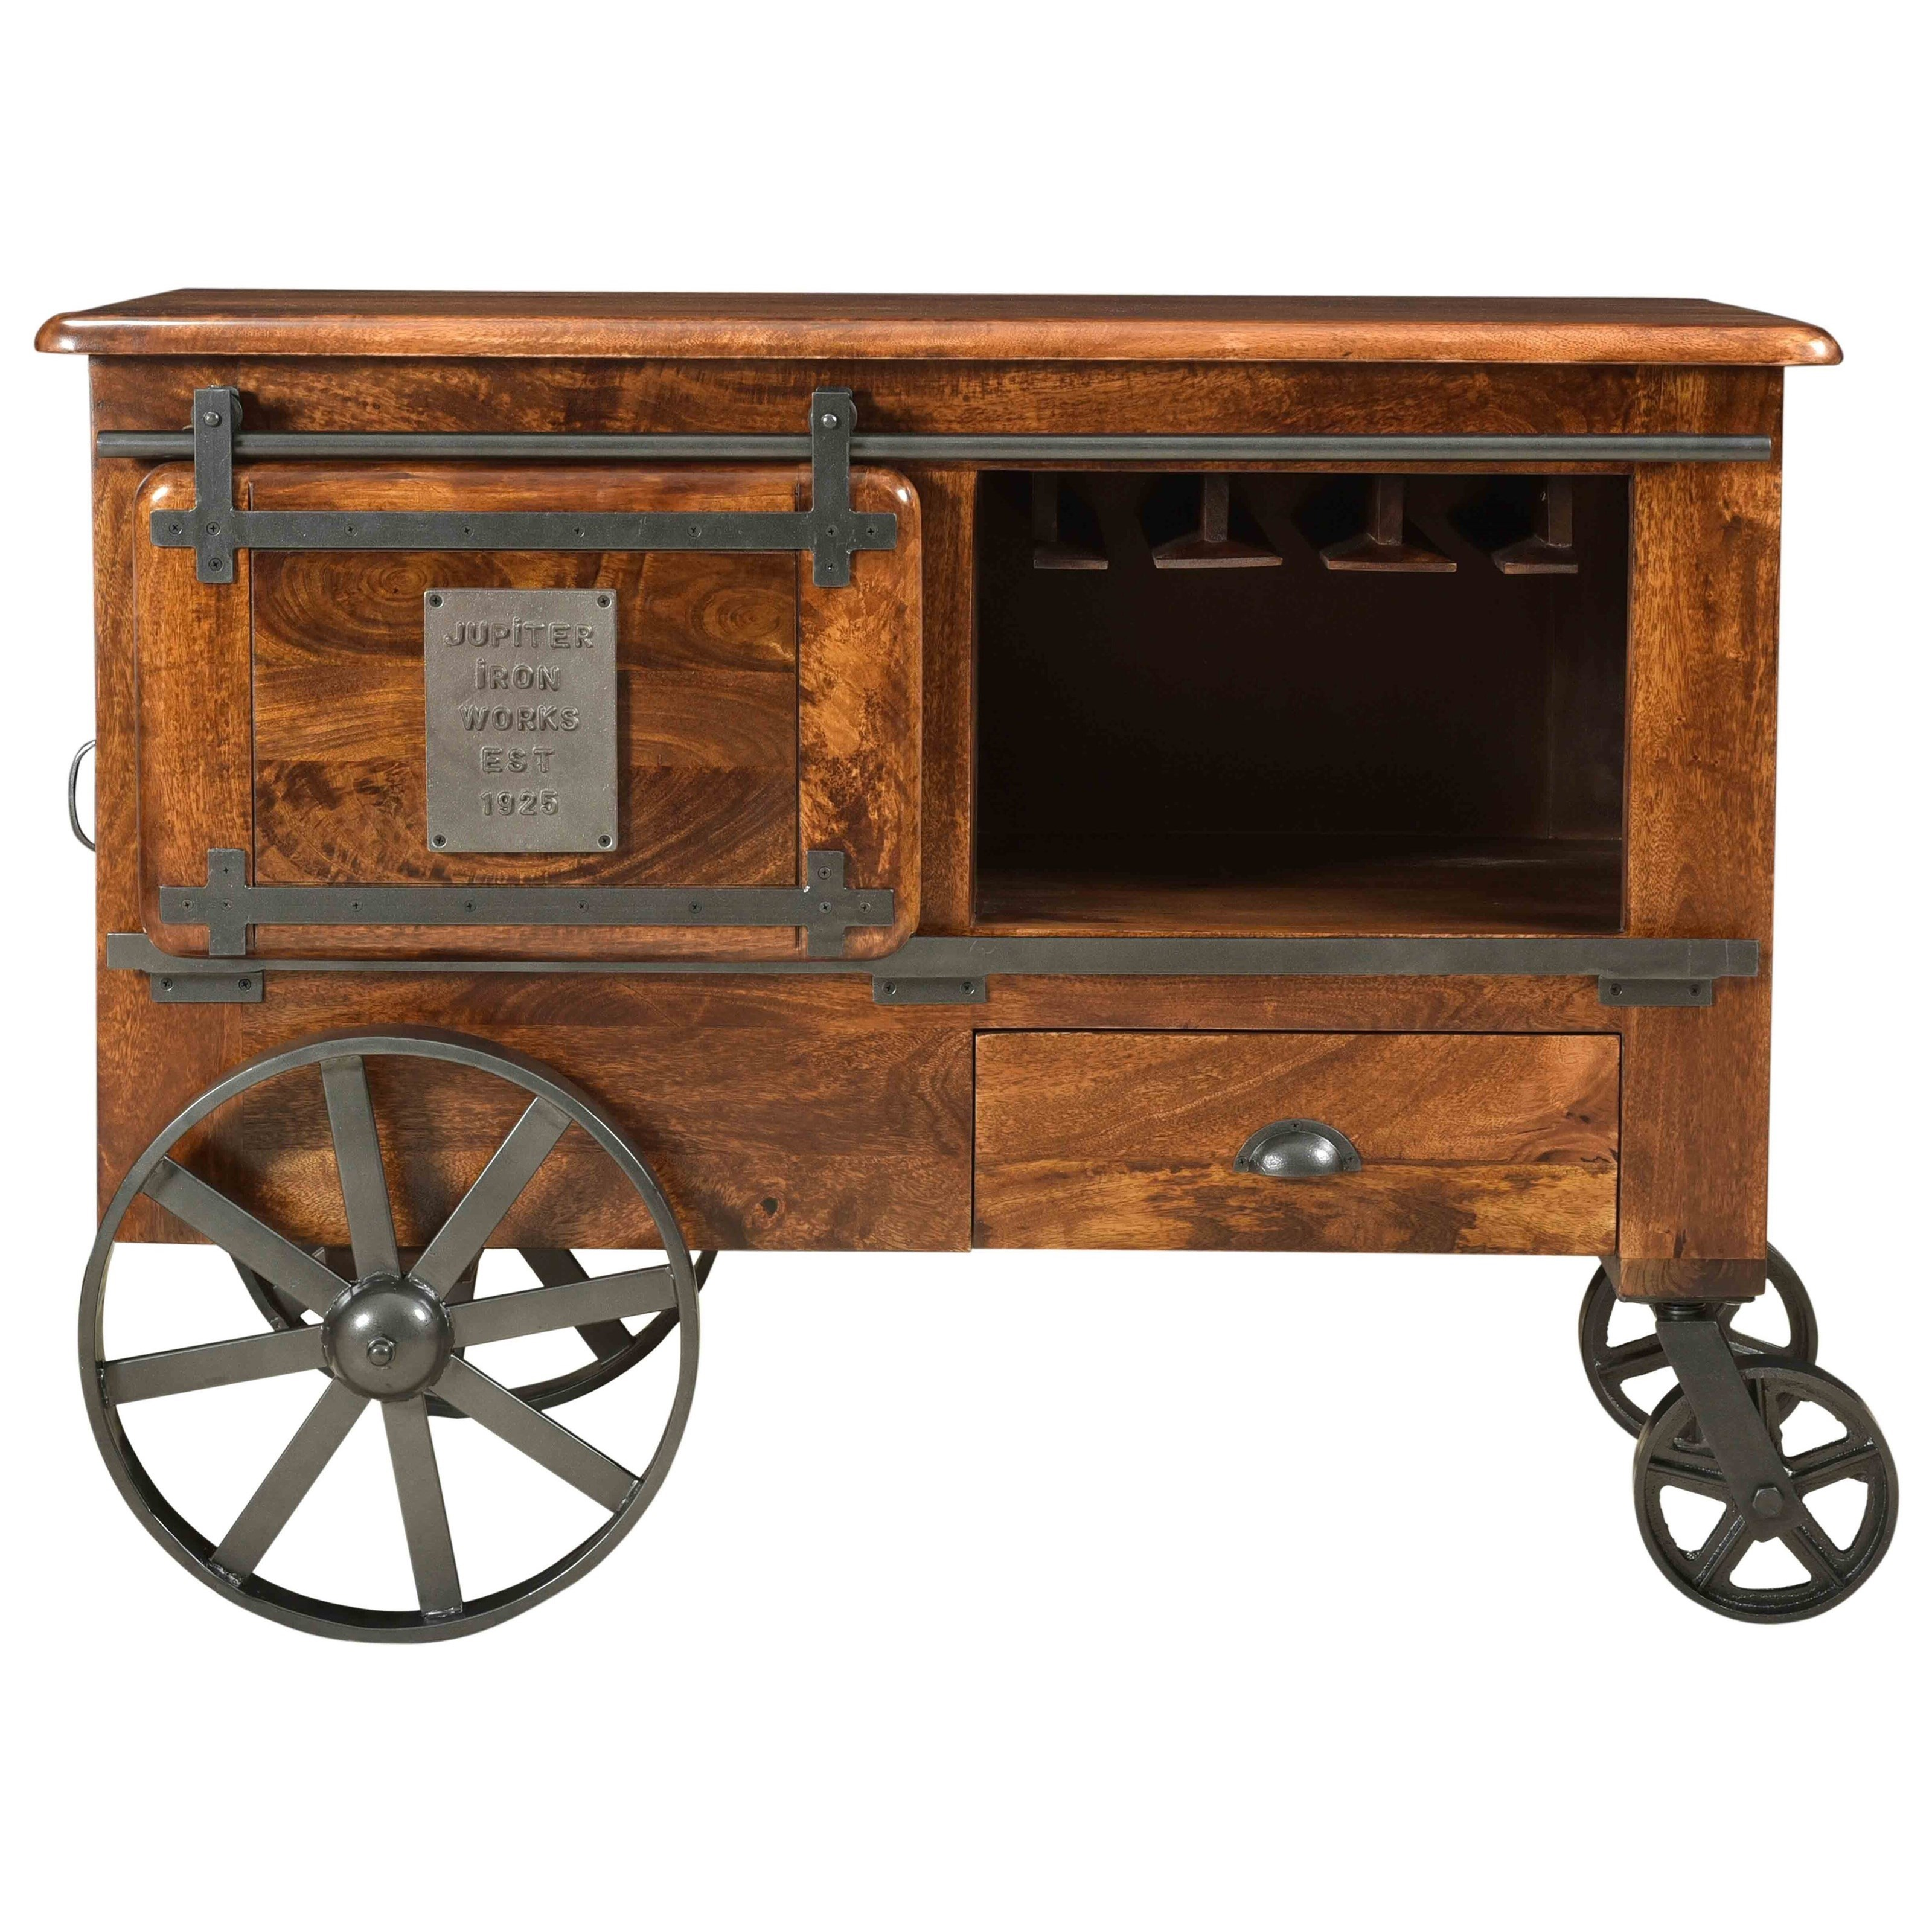 asdf Two Door One Drawer Wine Cart by Coast to Coast Imports at Baer's Furniture